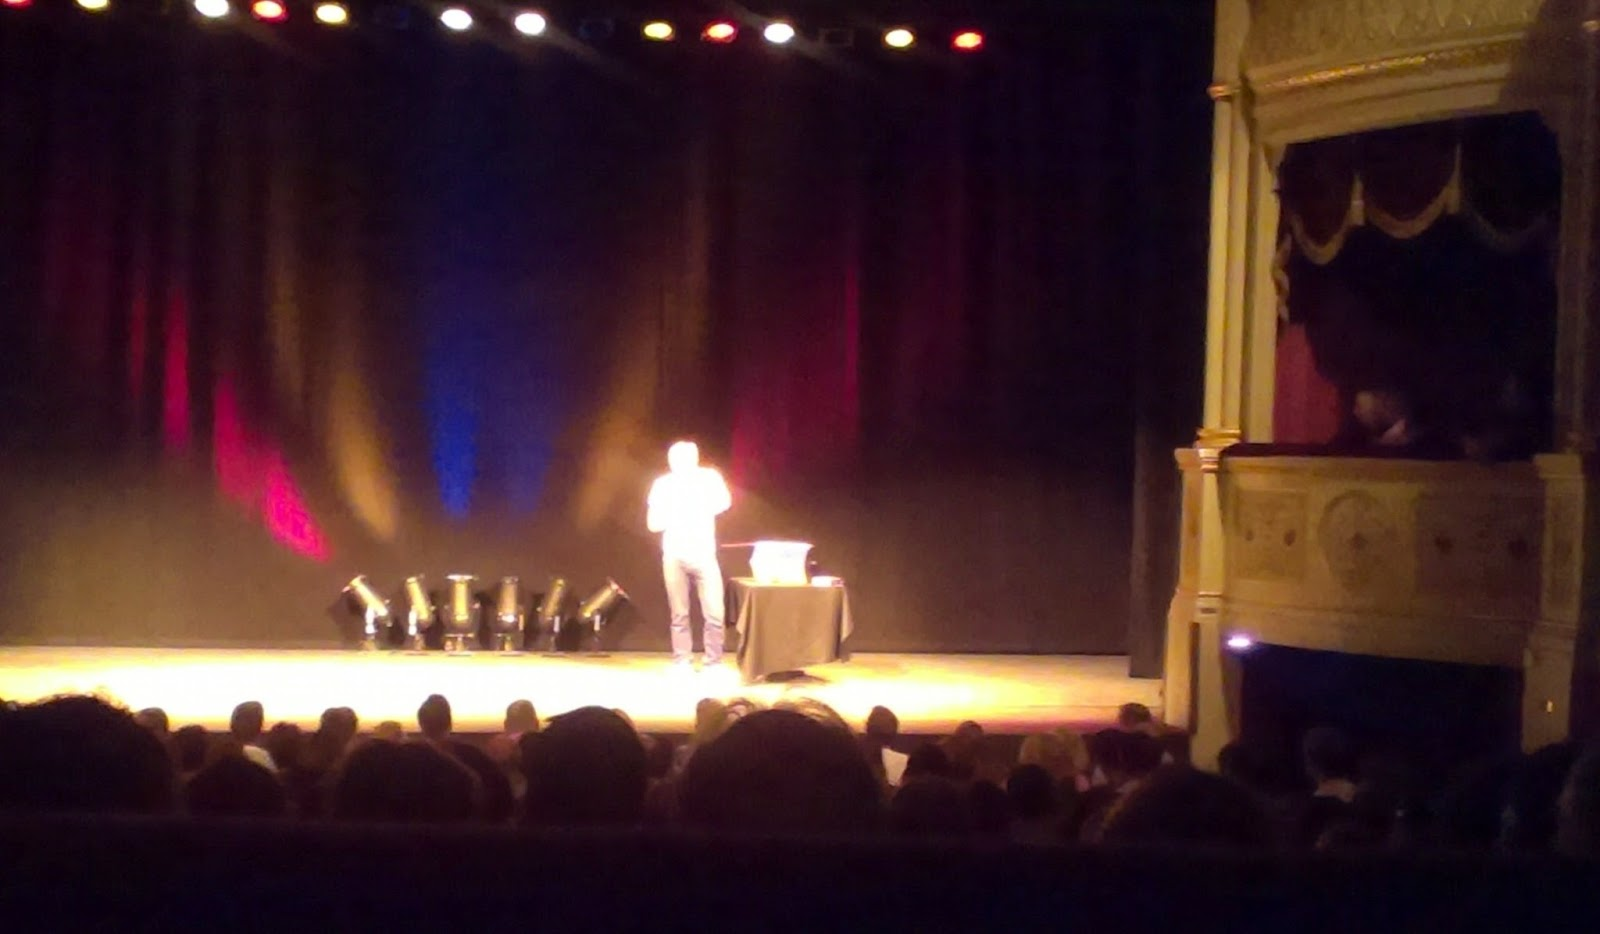 Russell Howard at Bath's Theatre Royal